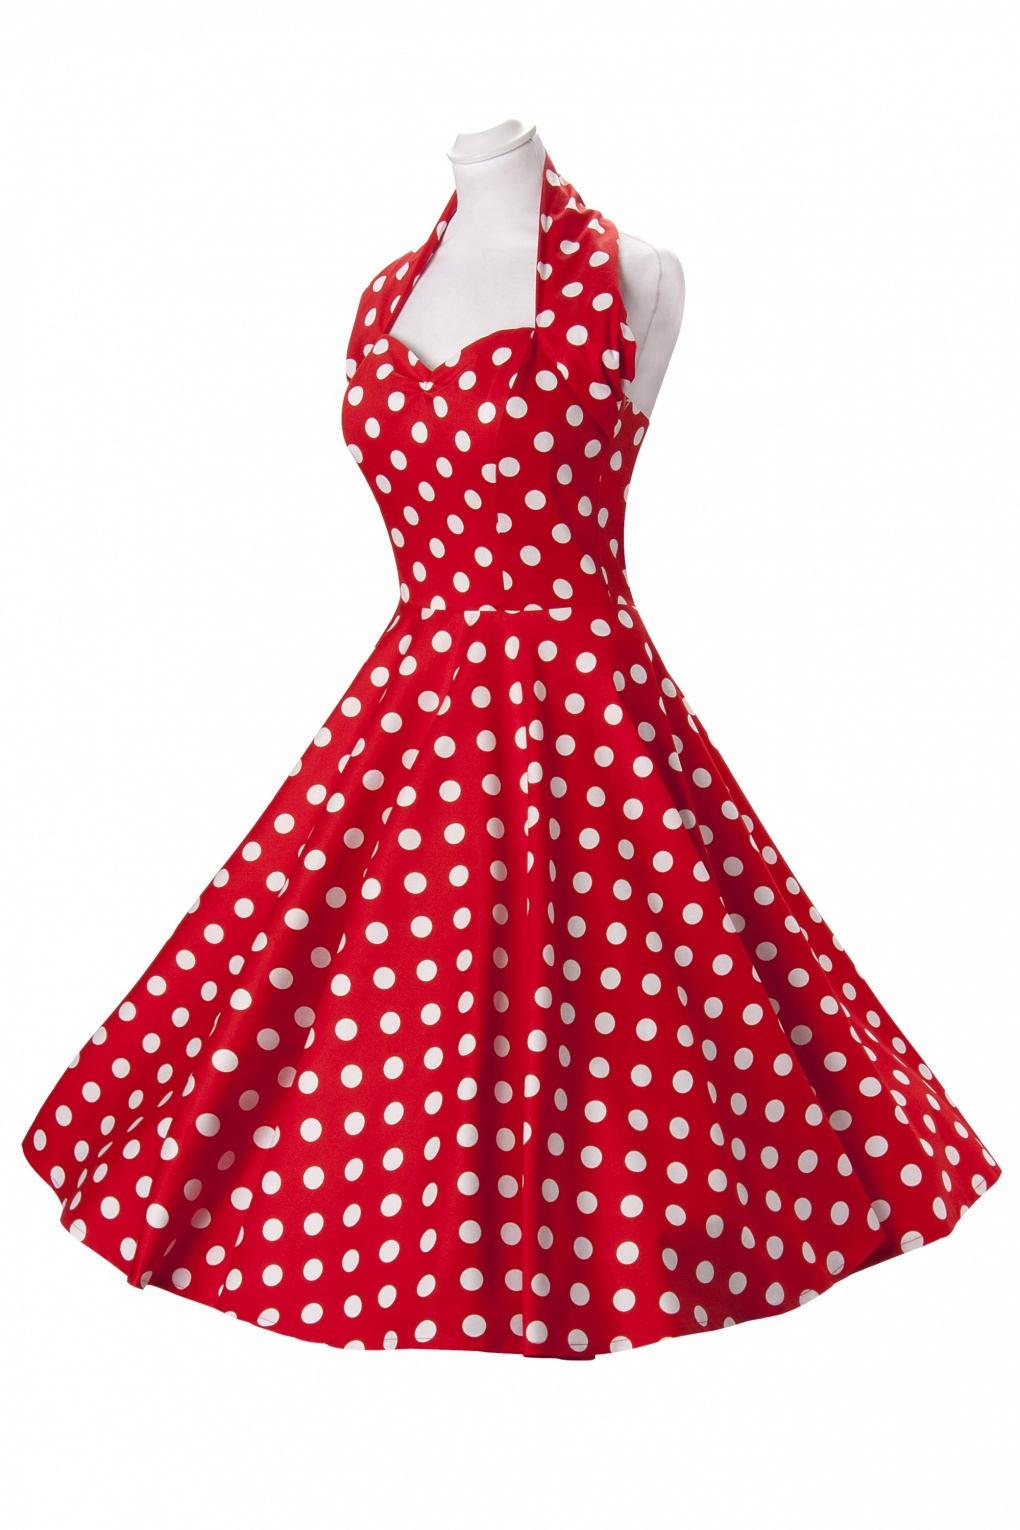 Blue And White Polka Dot Dress With Red Shoes